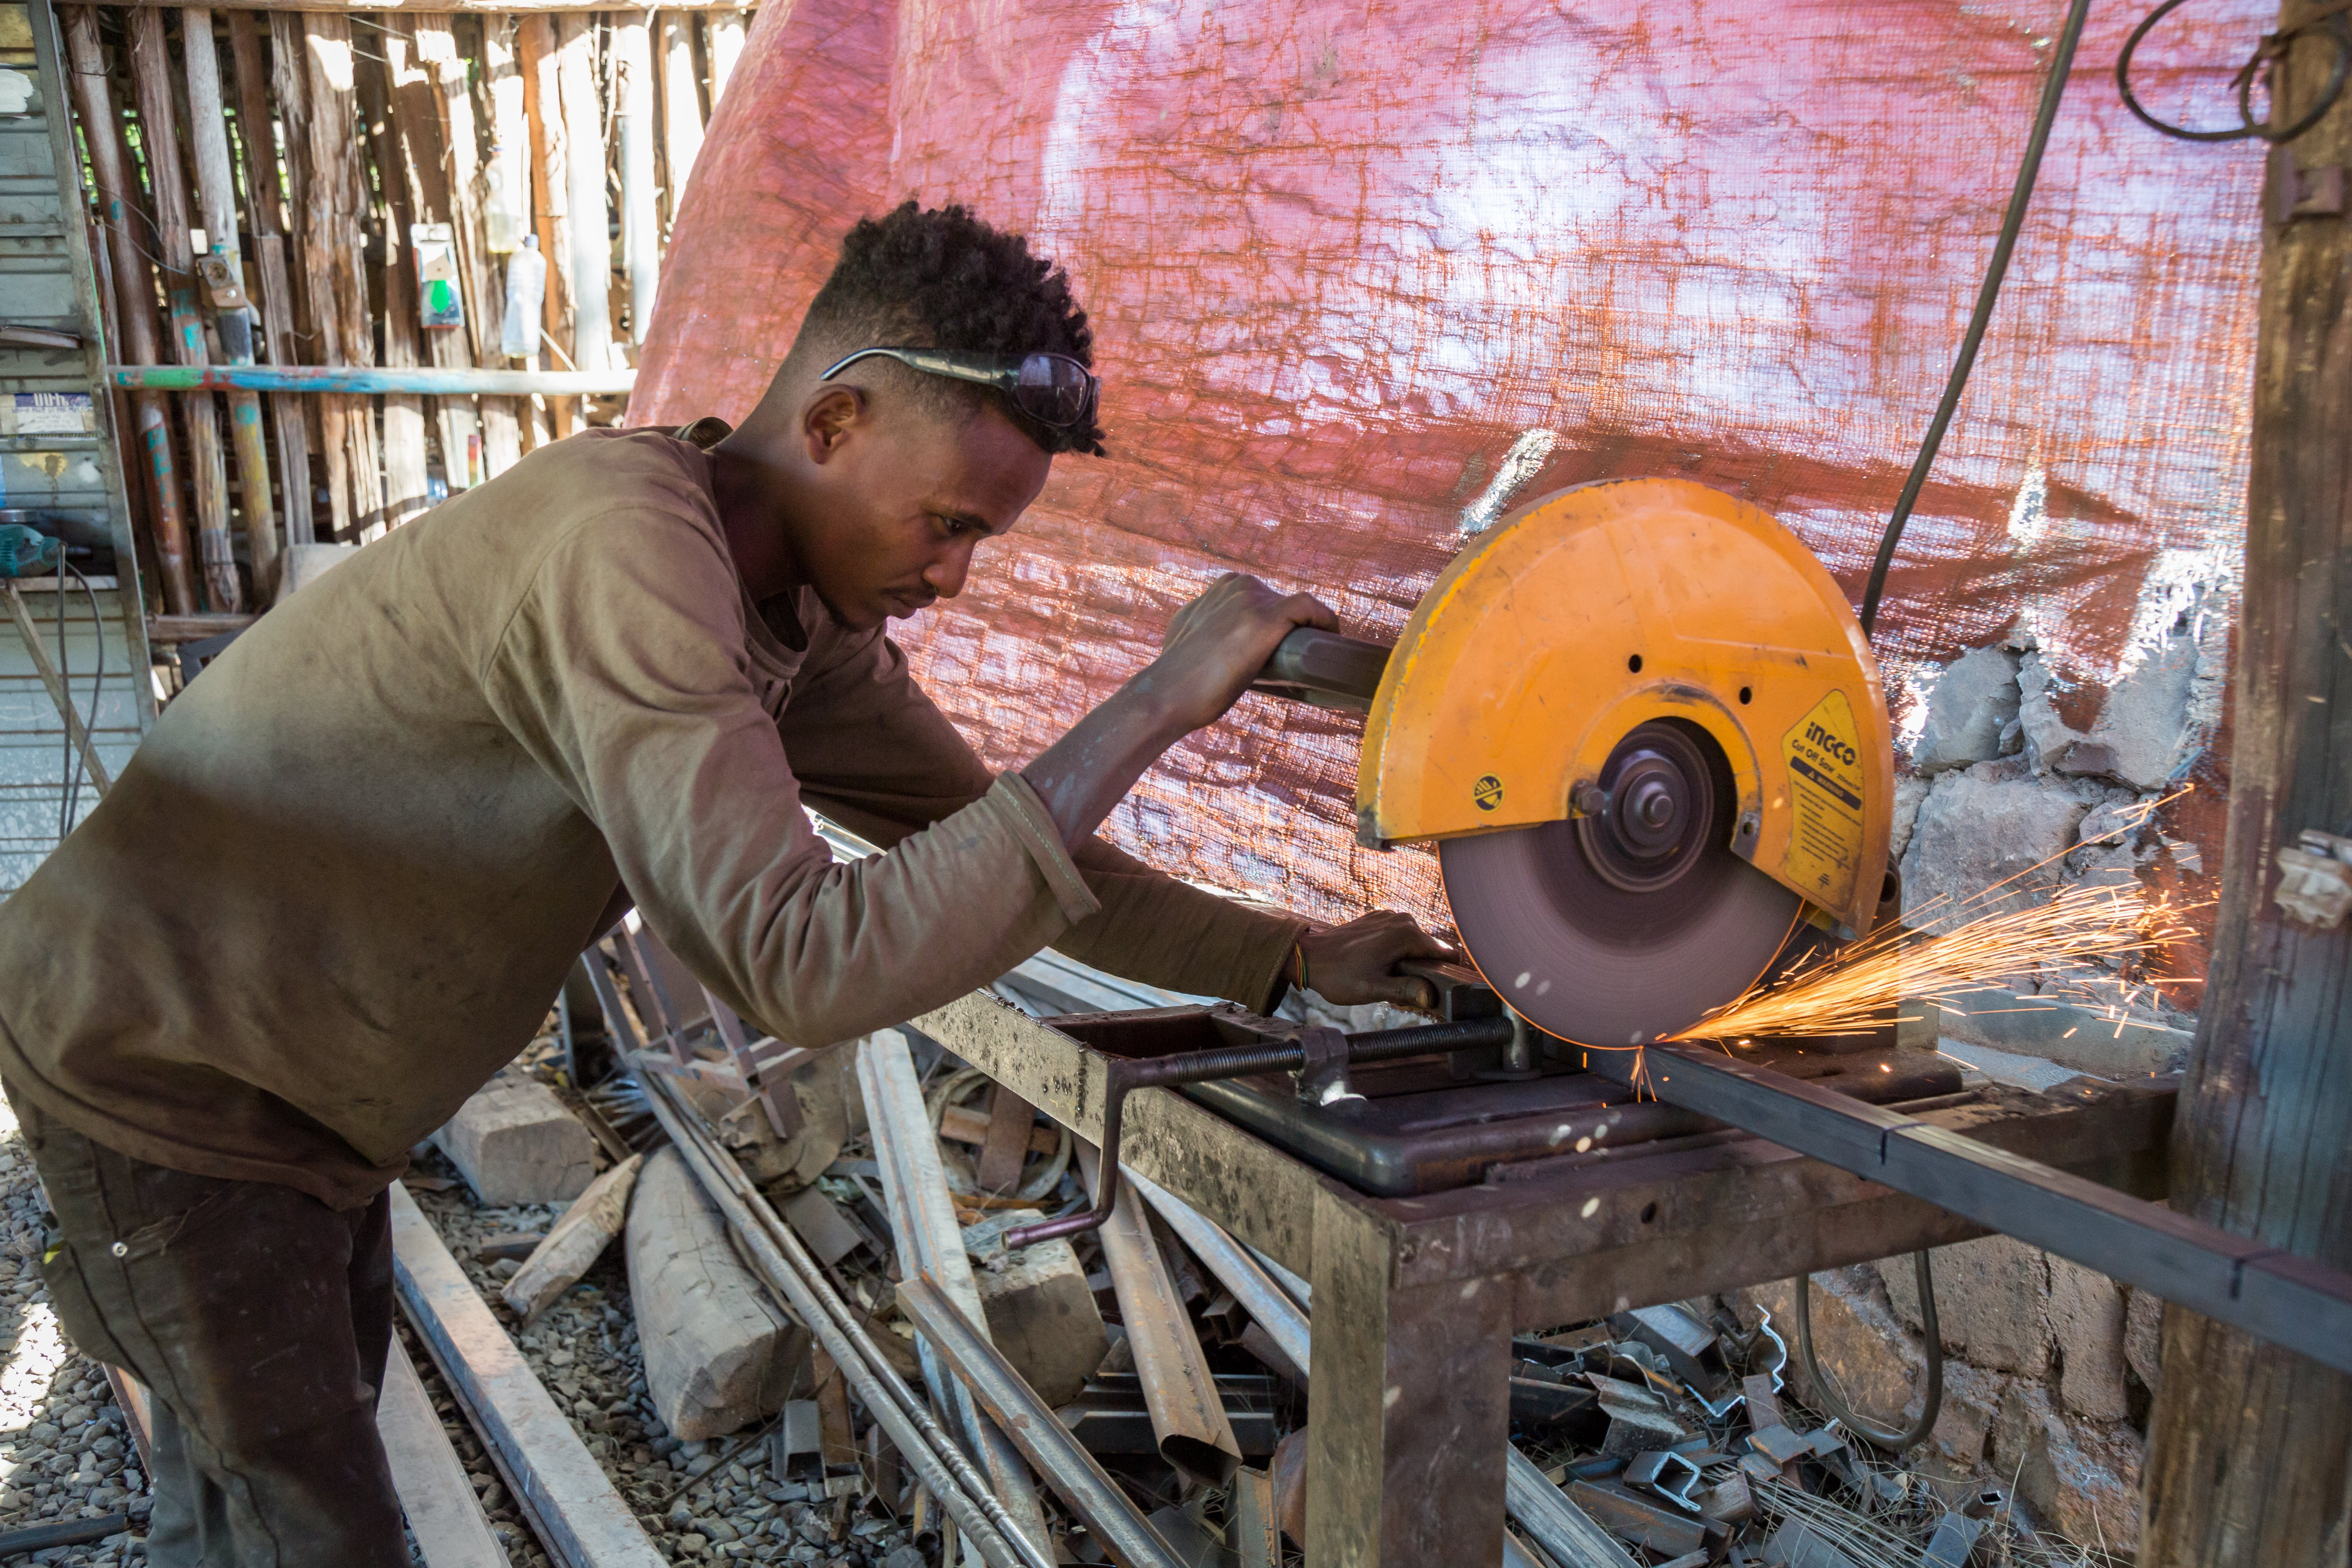 An adolescent boy working as a metal worker in Ethiopia